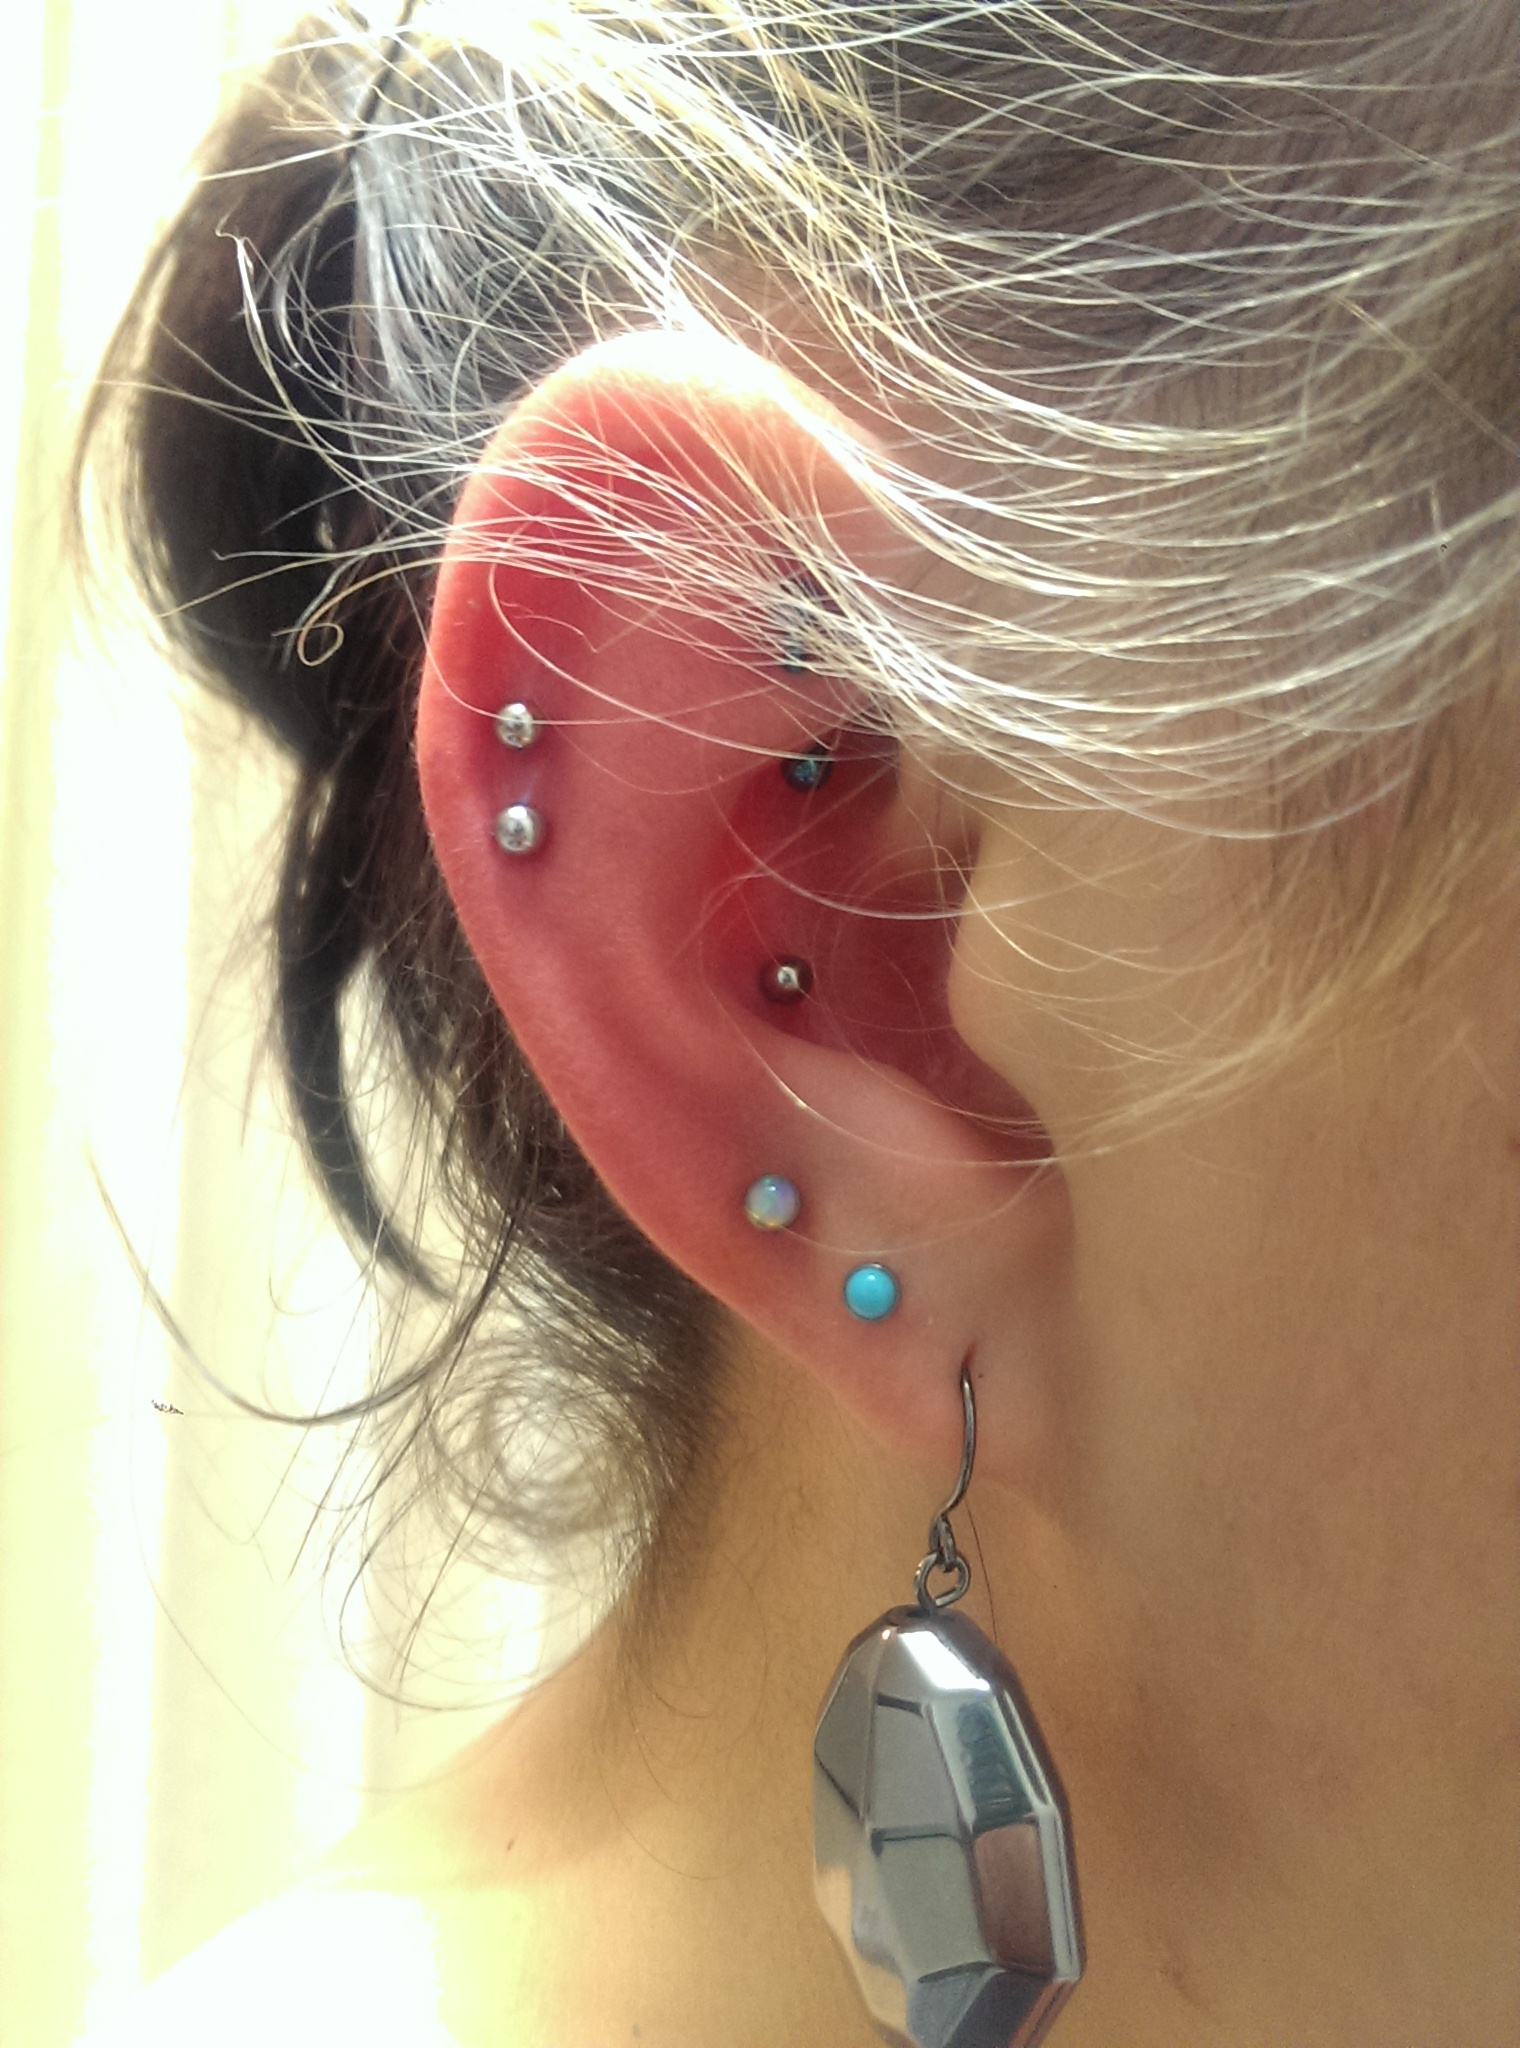 Helix and Conch Piercings